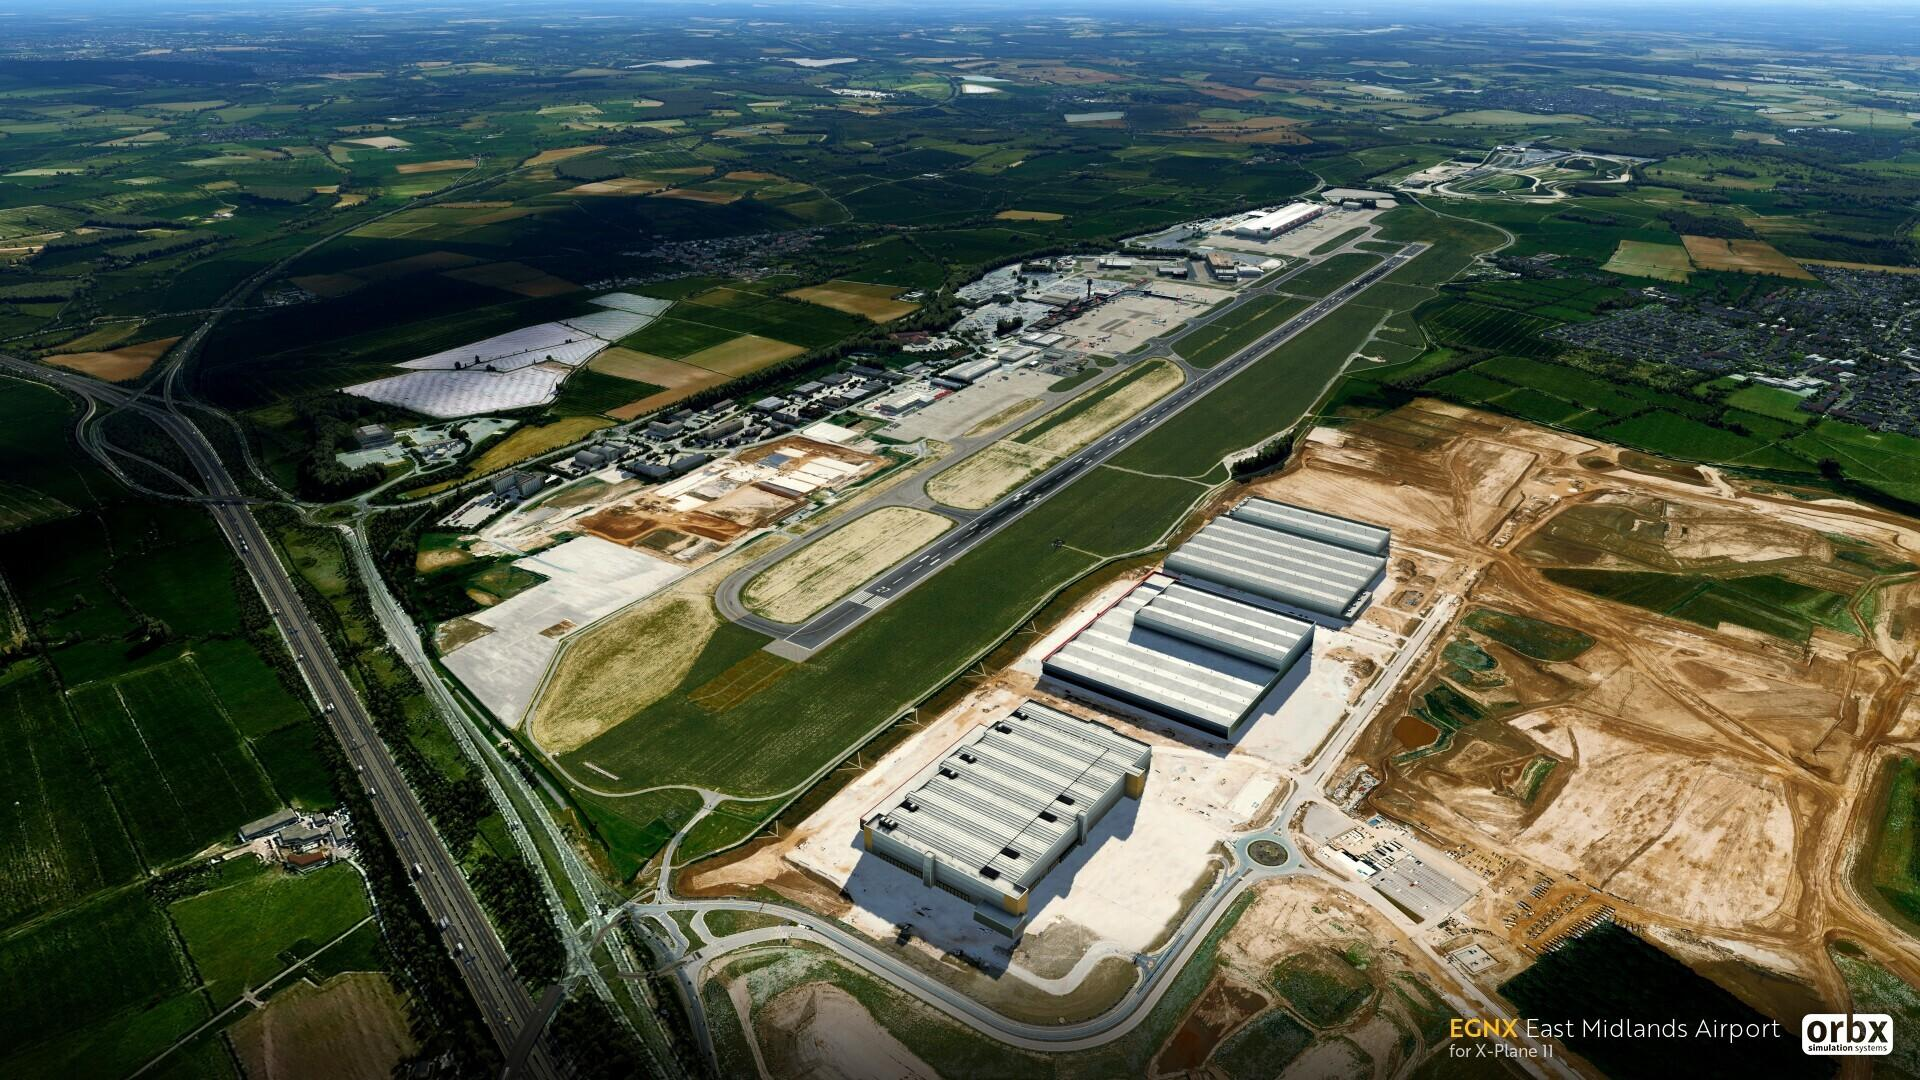 announcement] EGNX East Midlands Airport Lands on X-Plane 11